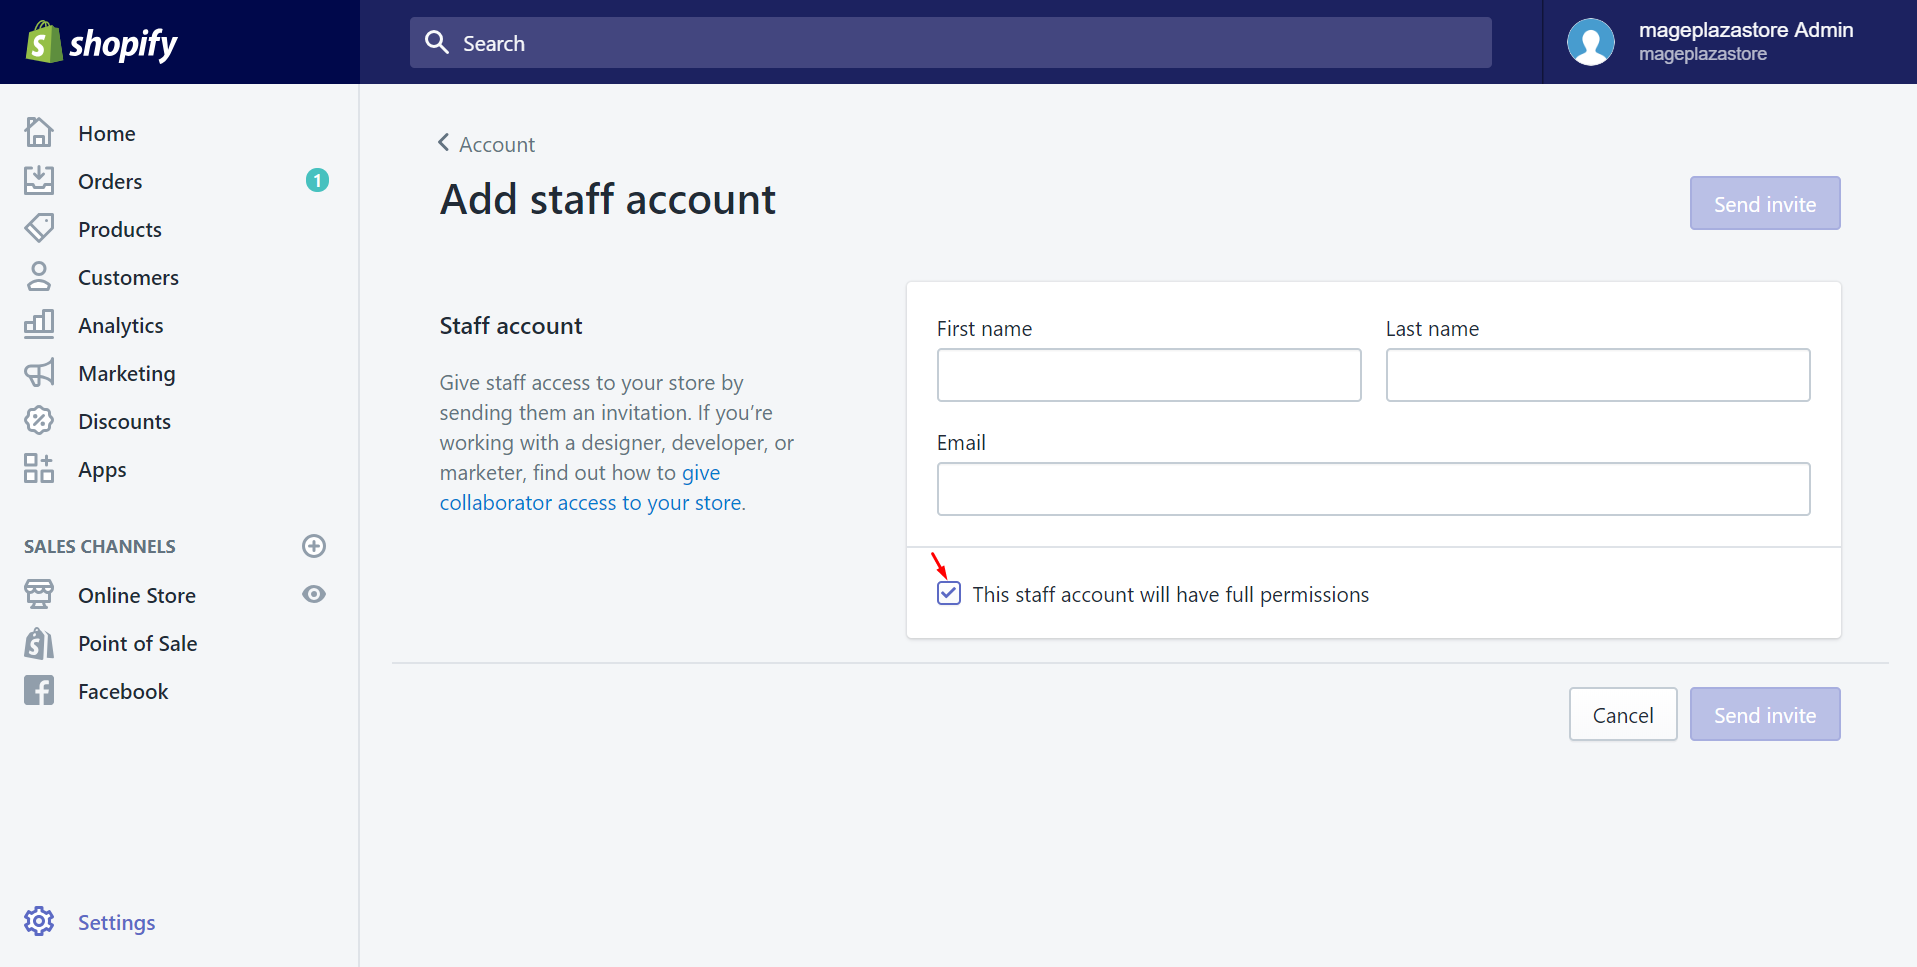 How to add a new staff account